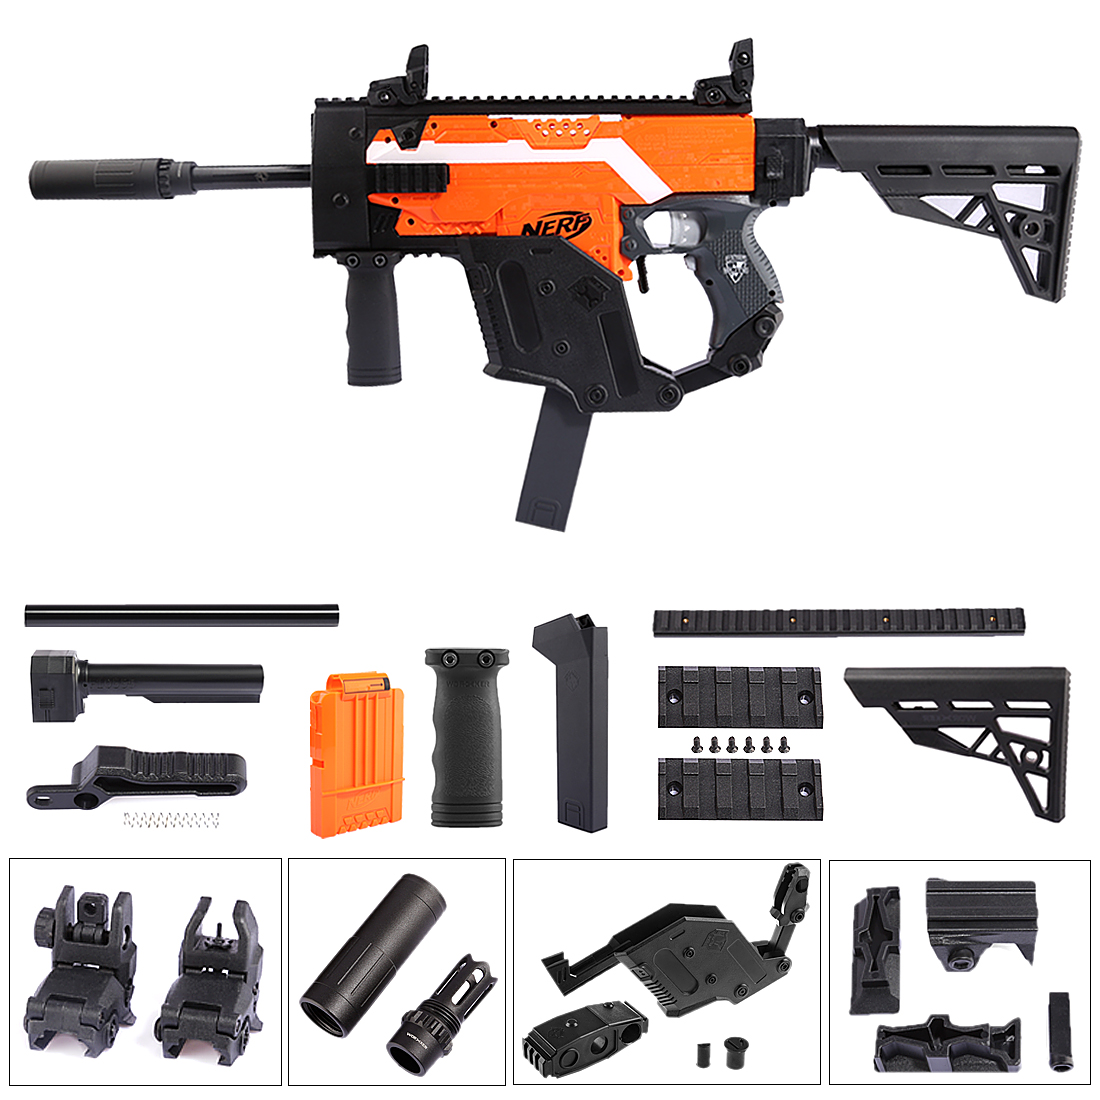 WORKER Dagger Cover Updated Version Modified Kit for Nerf Stryfe - Black